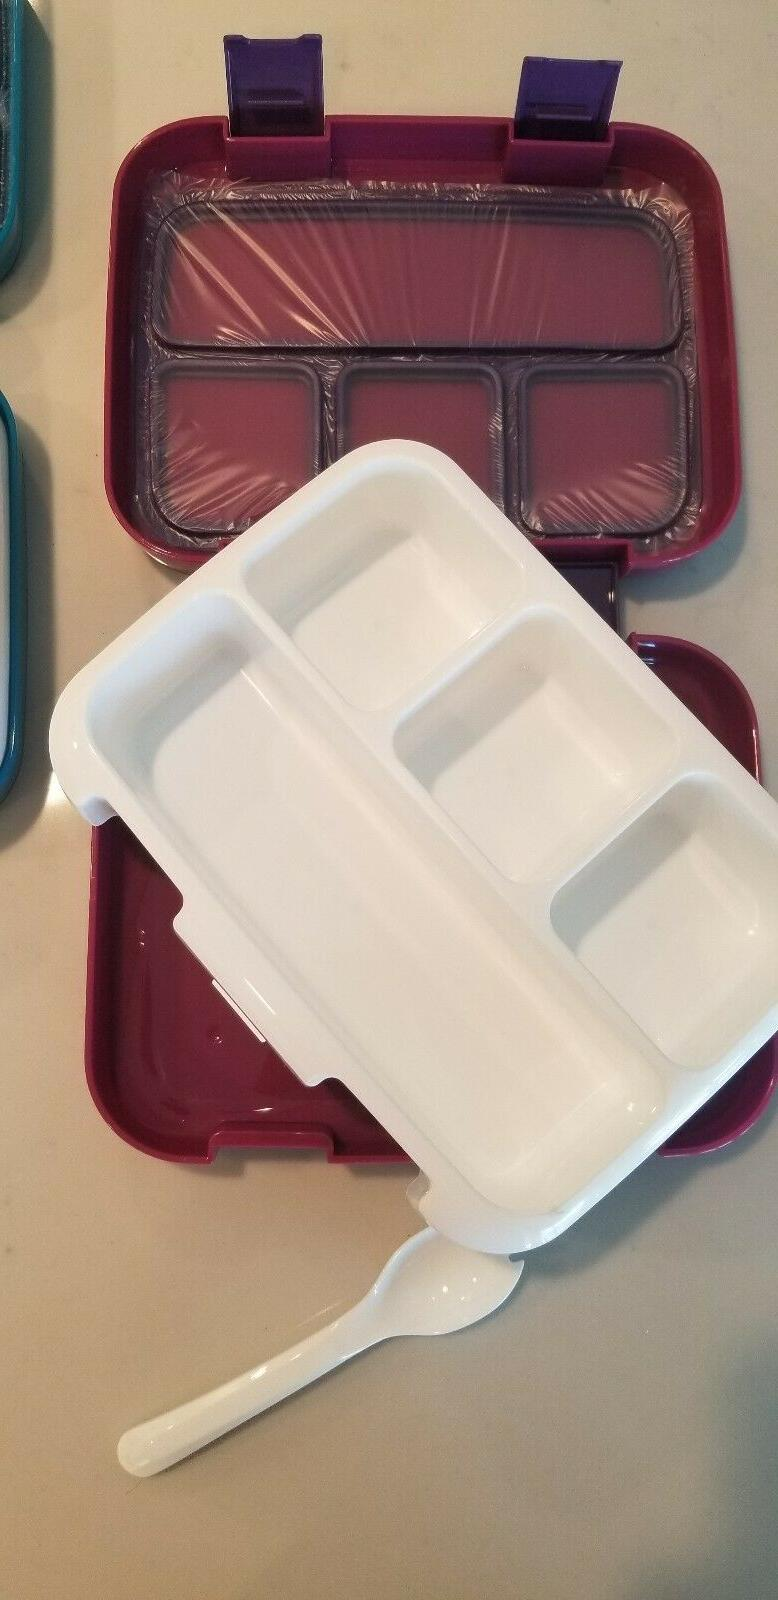 2 Lunch 4-Compartment Meal Prep